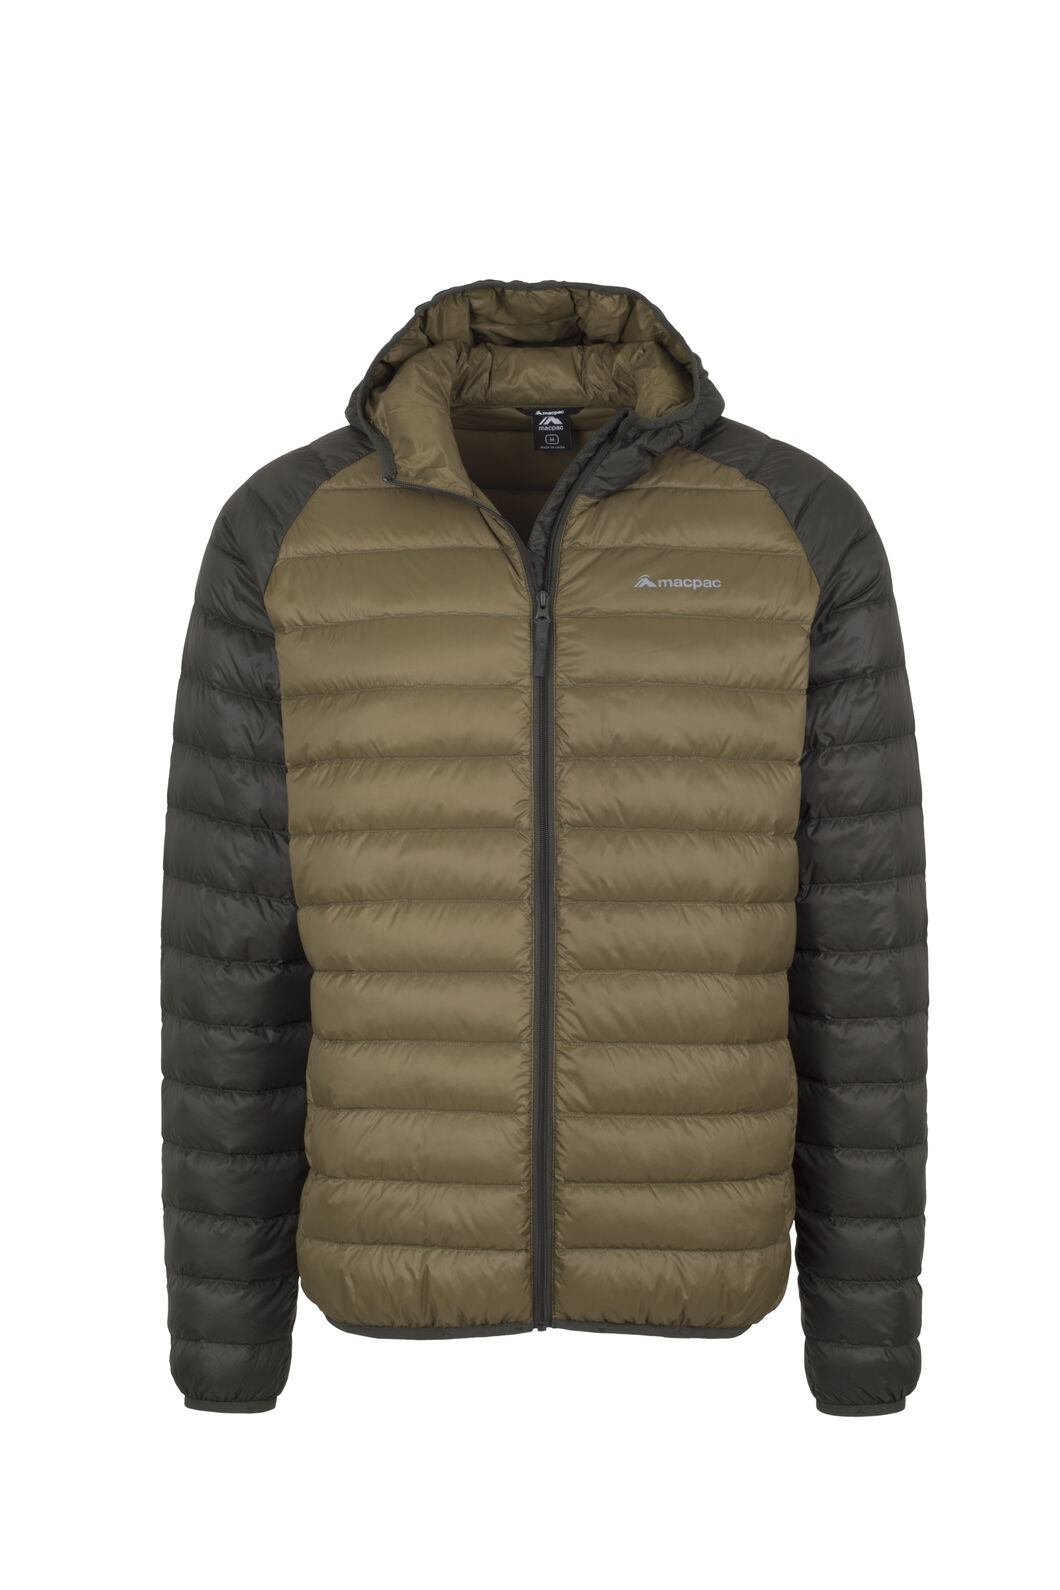 Macpac Uber Hooded Down Jacket - Men's, Peat, hi-res